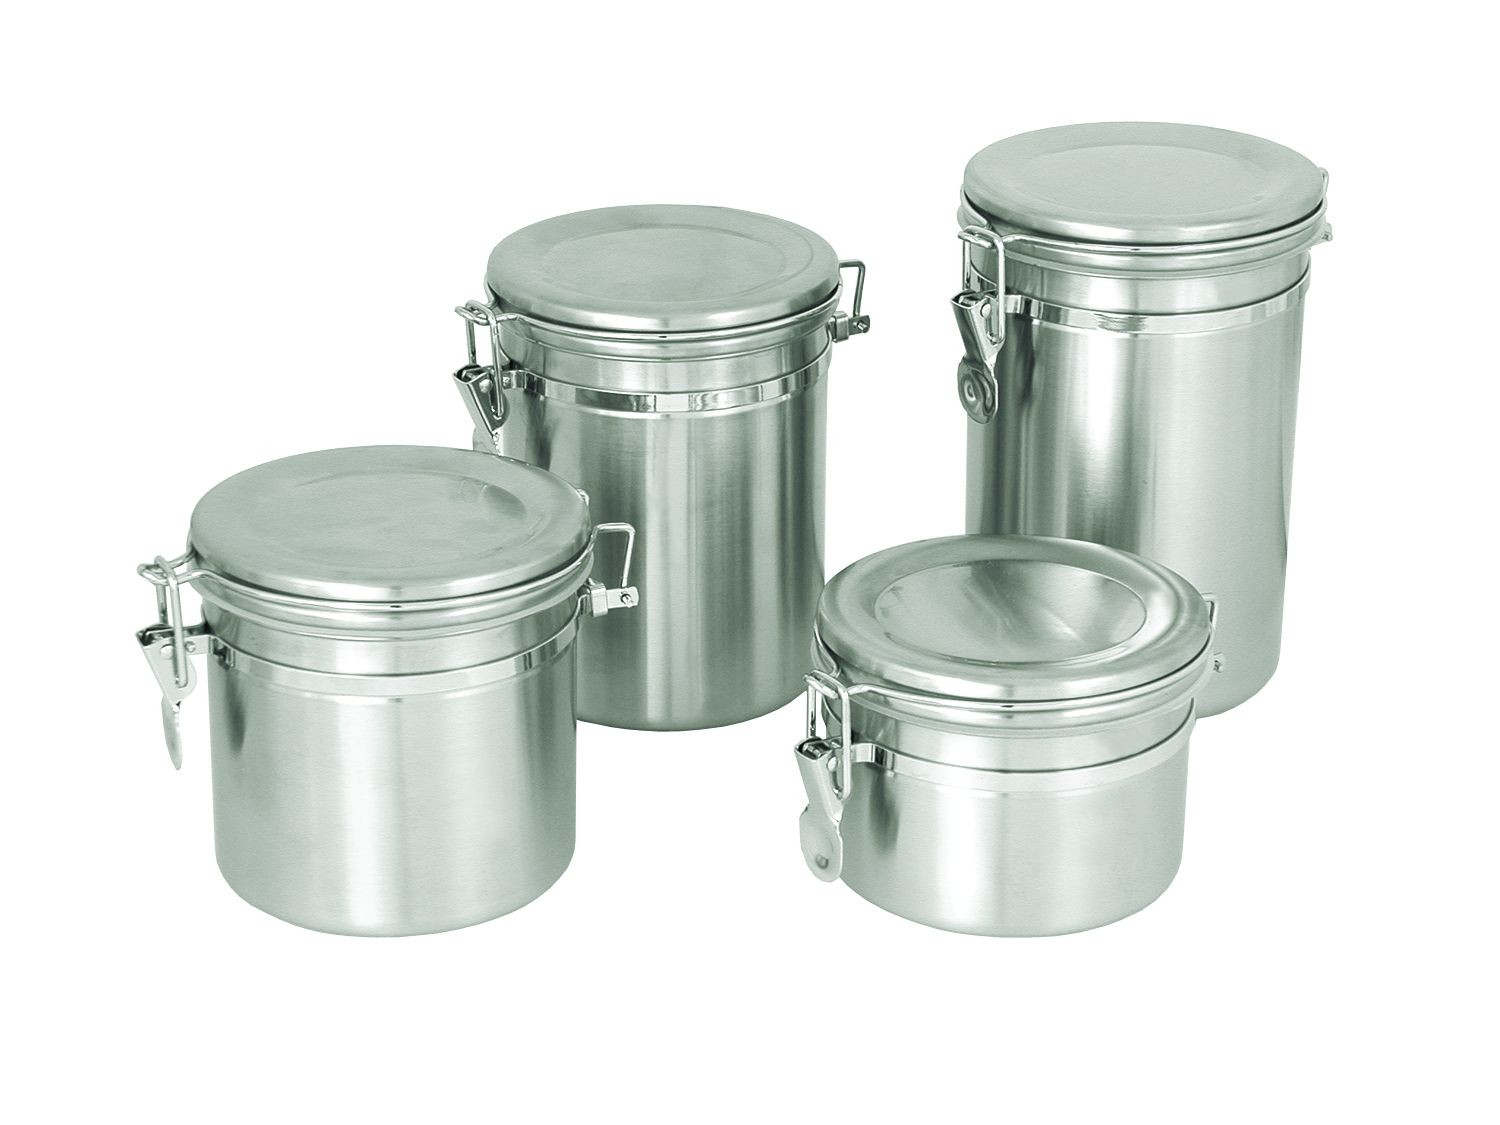 Update International CAN-7SS Canister 50 Oz. with Stainless Steel Lid